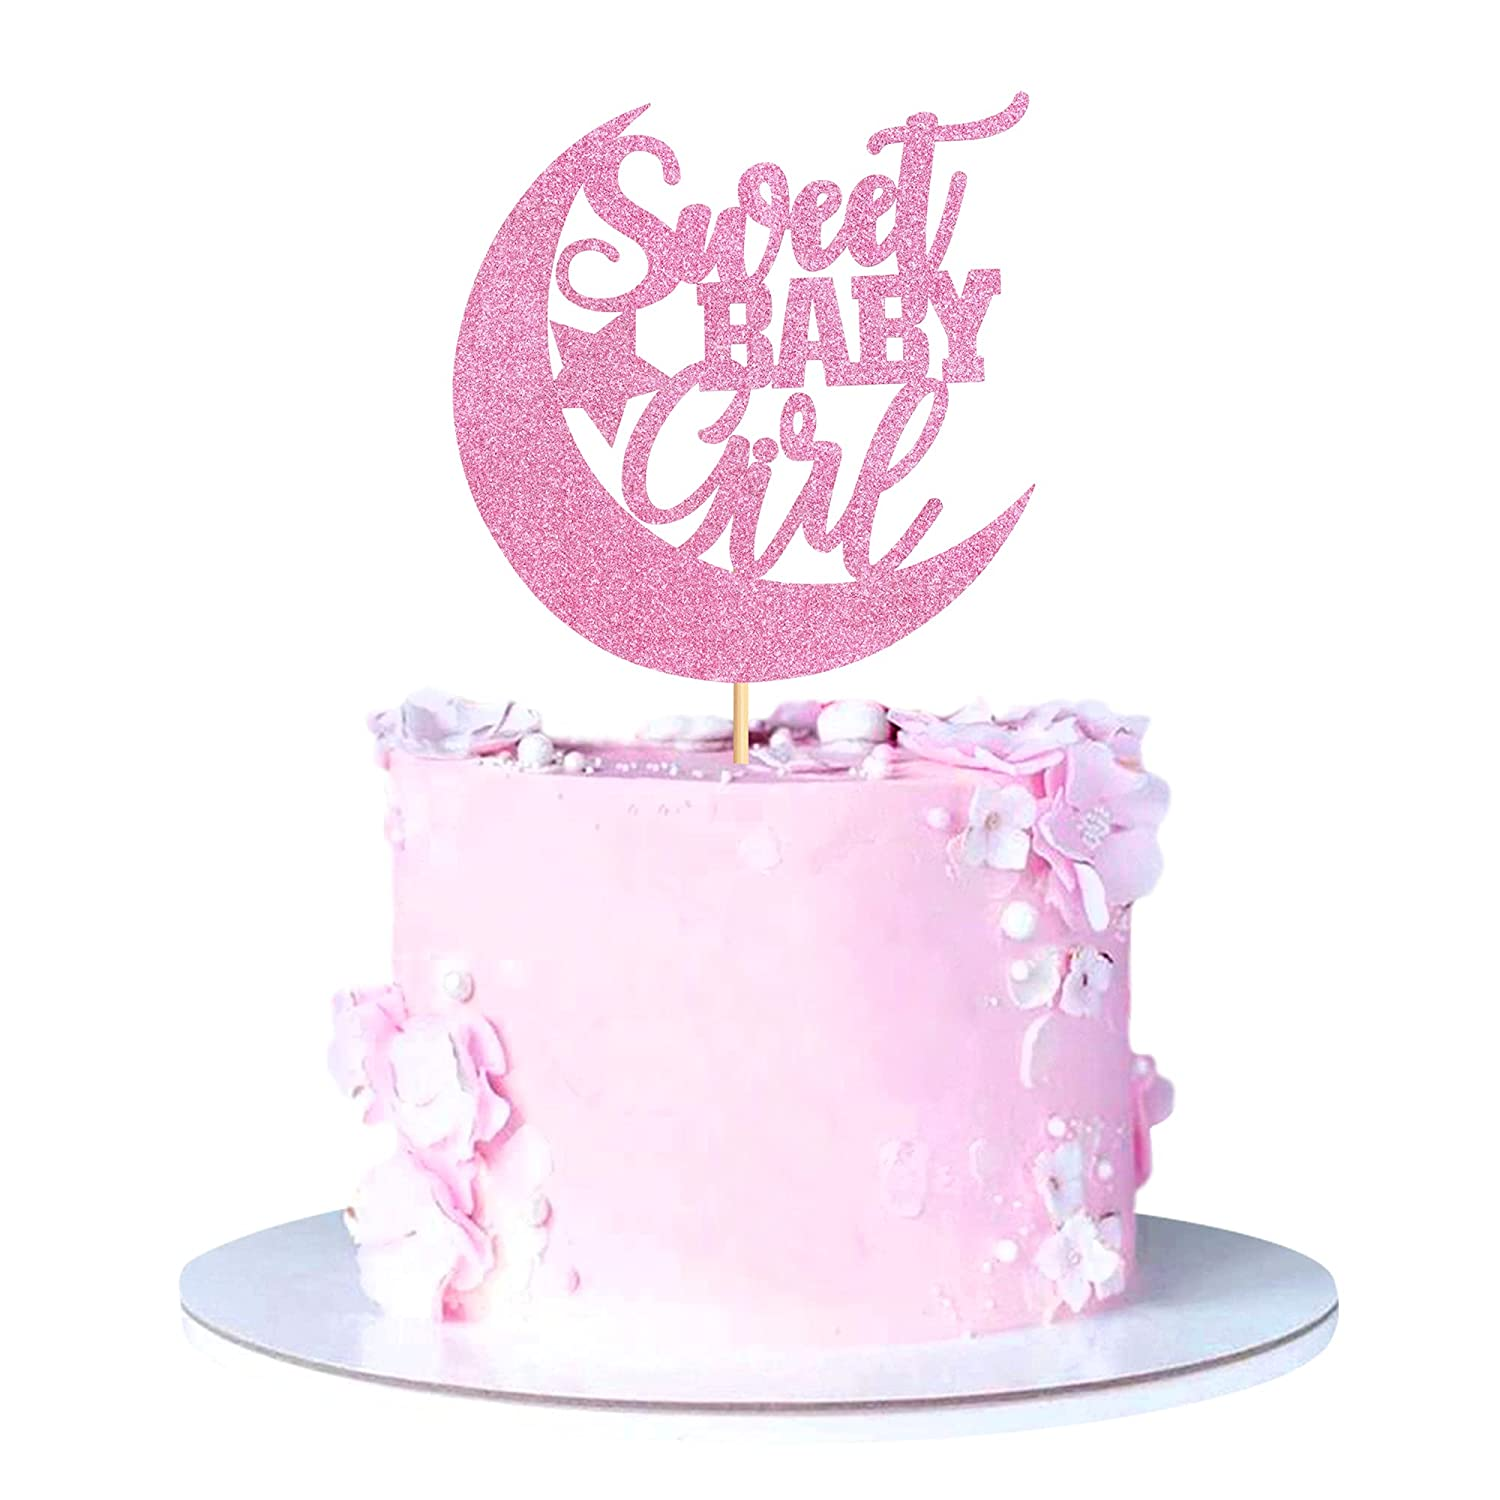 Ercadio 1 Pack Pink A surprise price is realized Memphis Mall Glitter Sweet Topper Girl Cake Moo with Baby